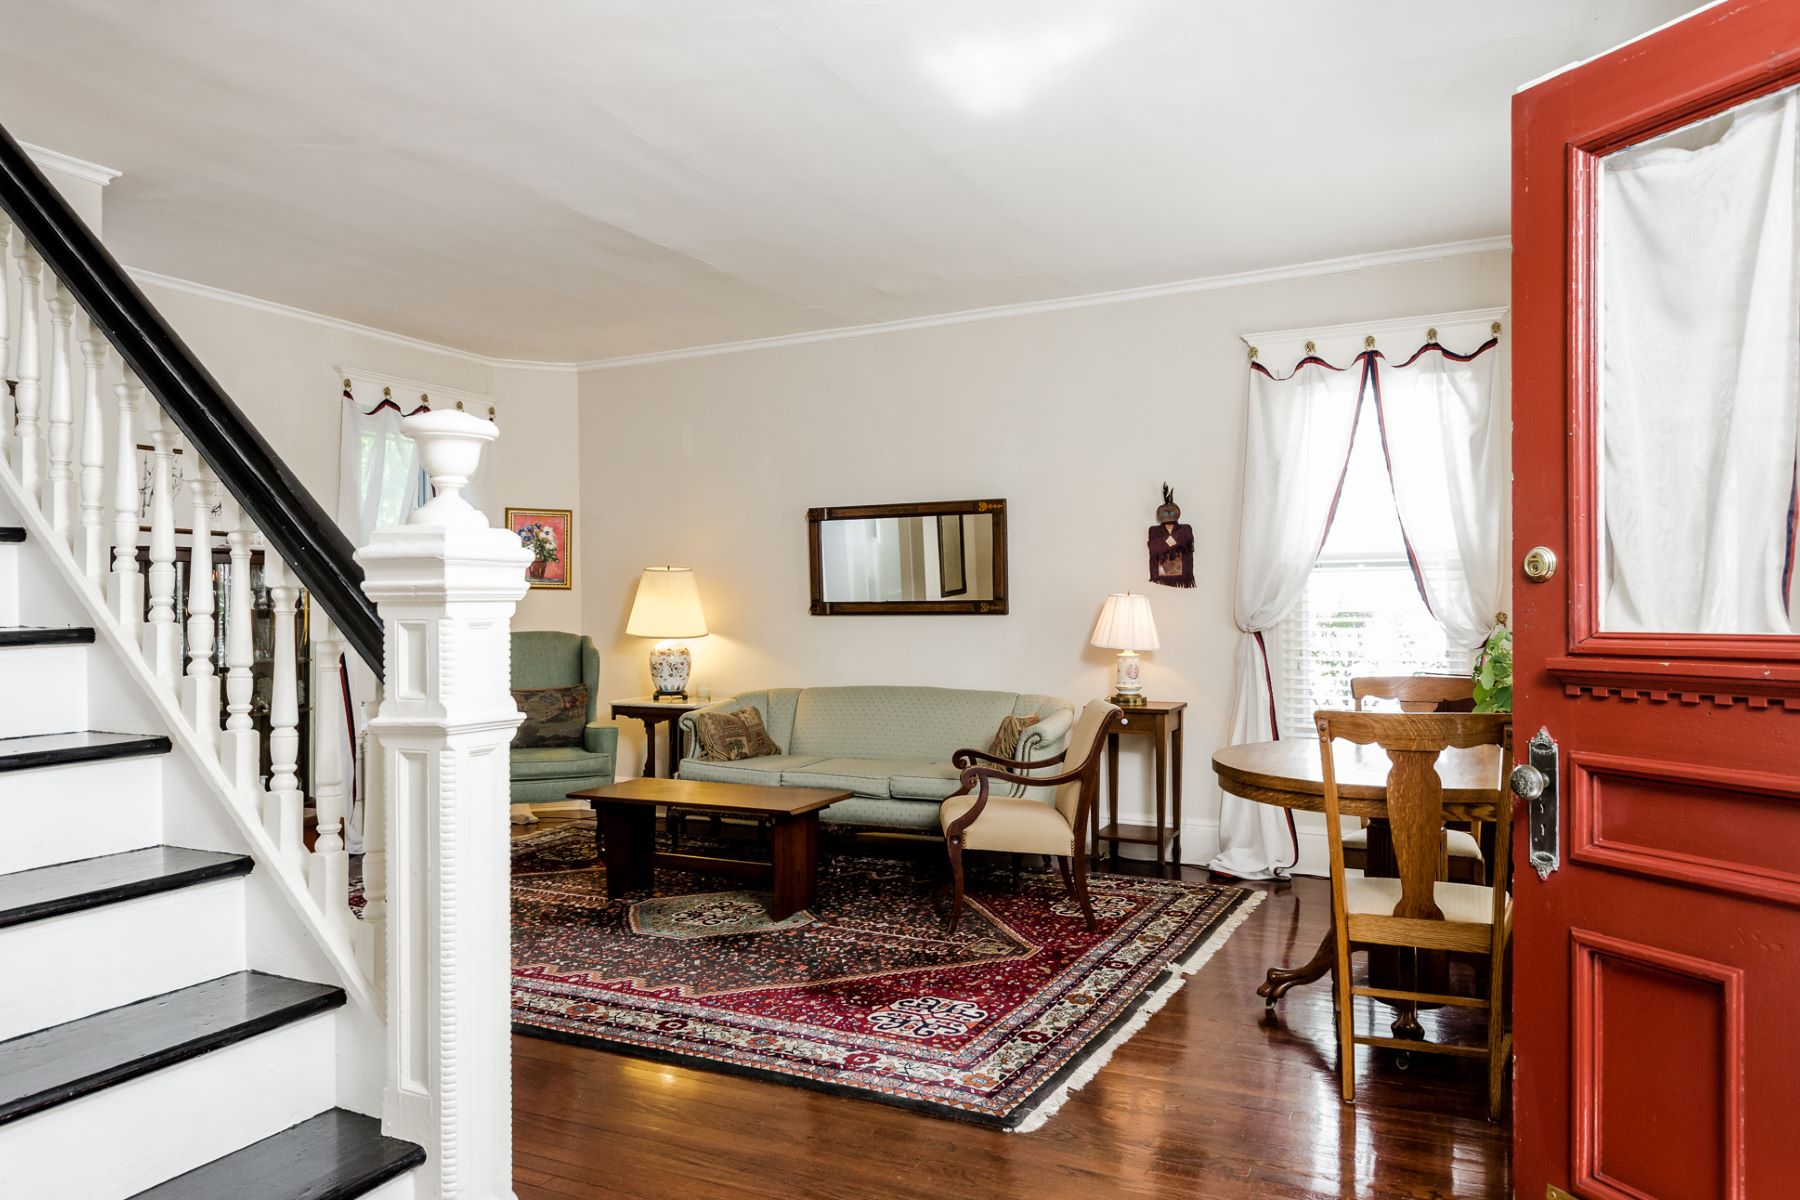 Additional photo for property listing at Uptown Living at Its Best 26 North Main Street, Pennington, New Jersey 08534 United States